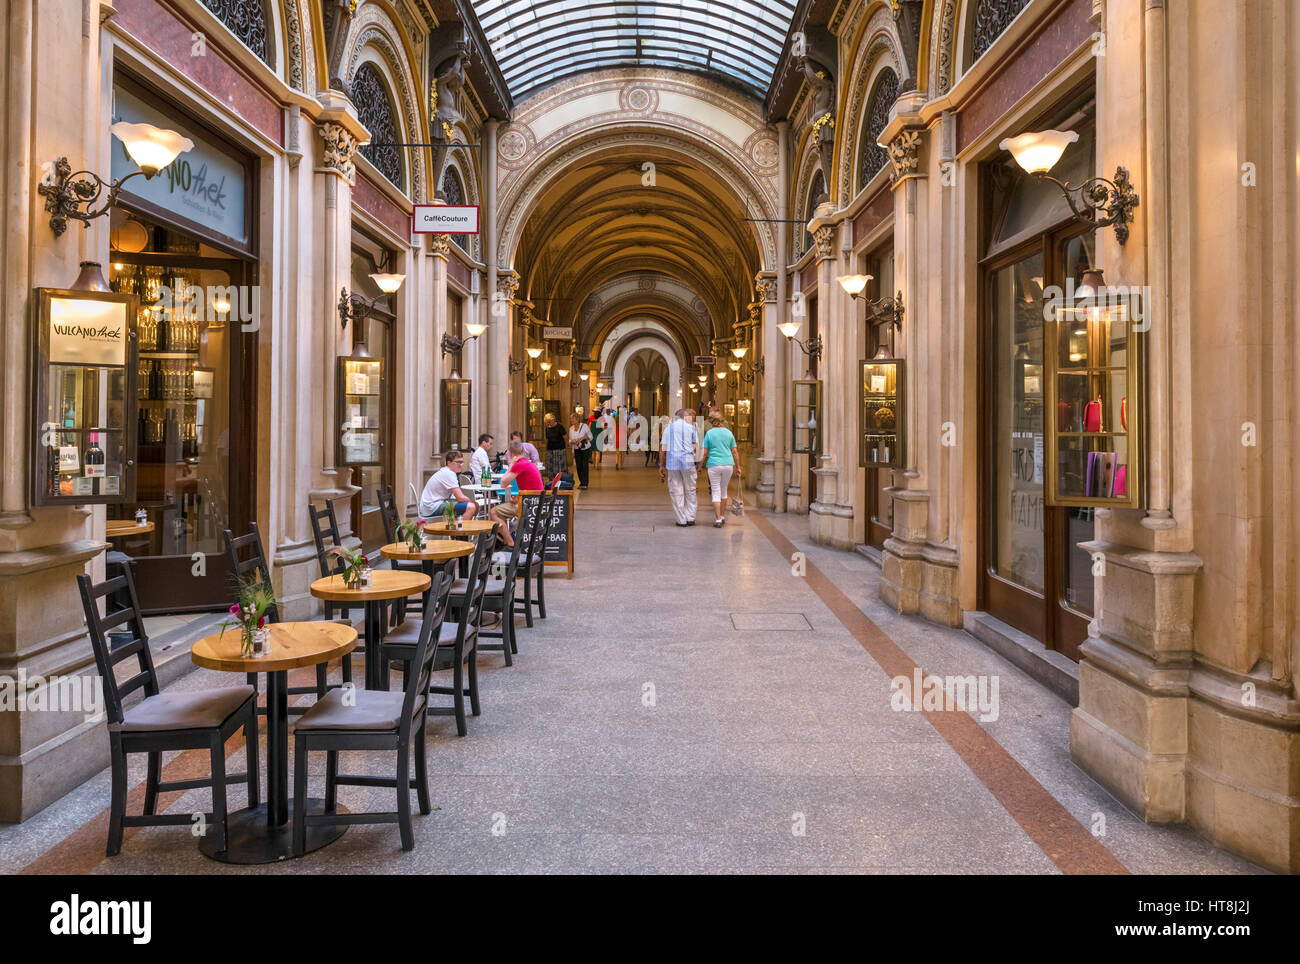 Cafe and shops in the Freyung Passage, Palais Ferstel, Innere Stadt, Vienna, Austria - Stock Image